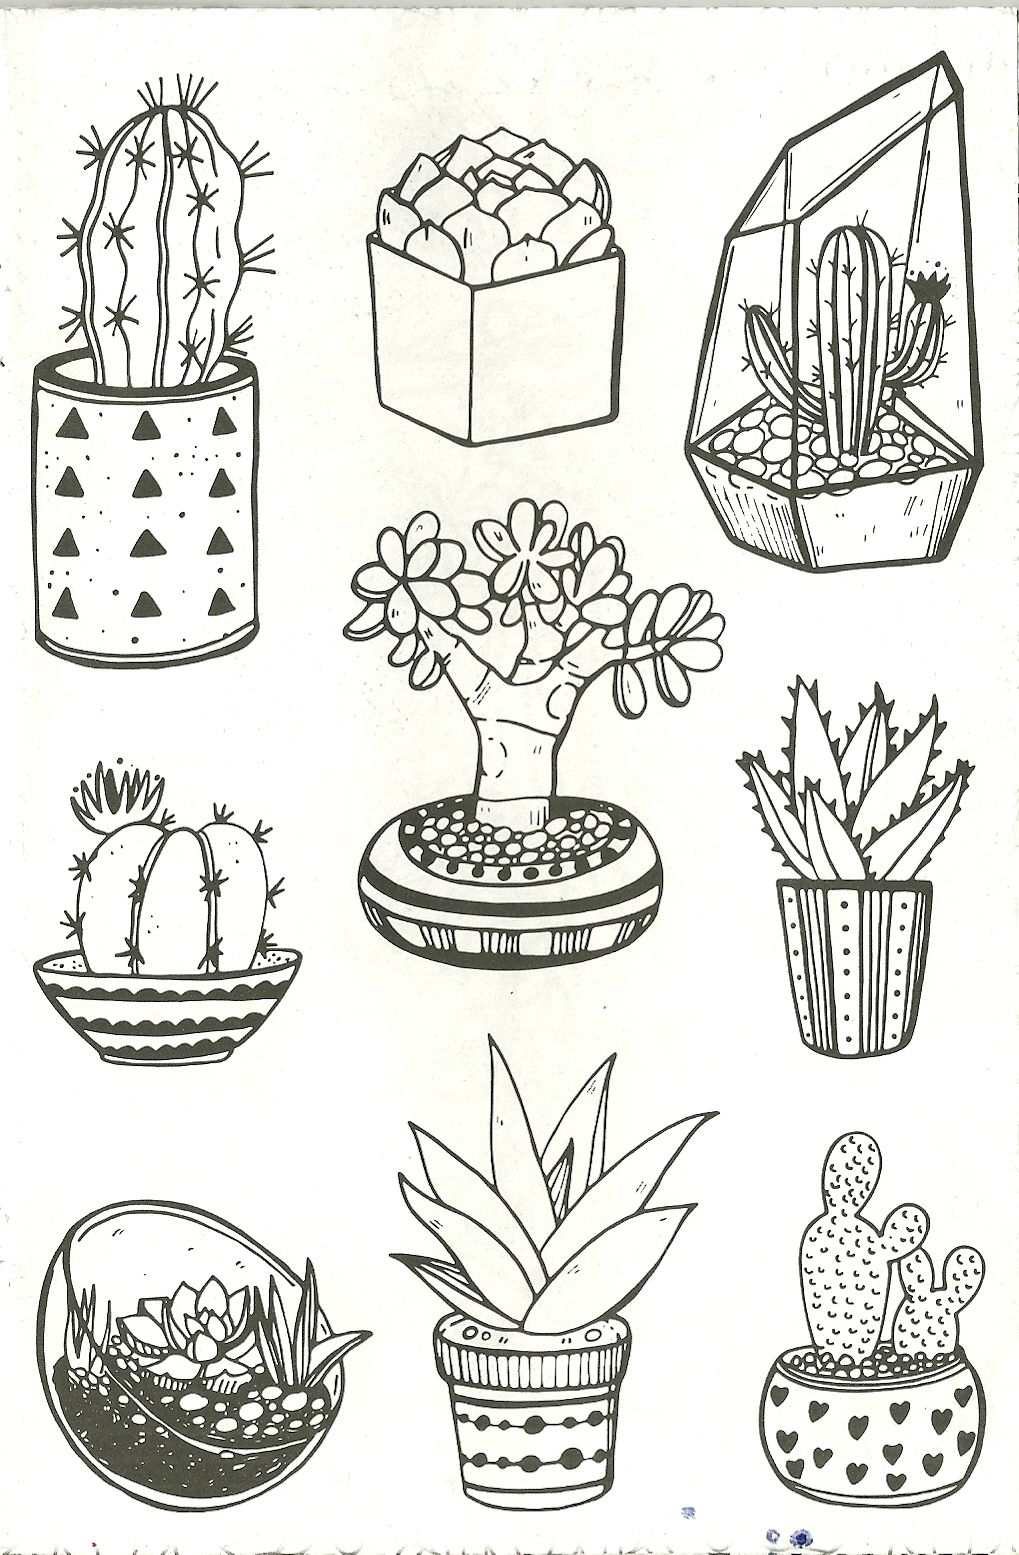 succulents and cacti's | Coloring pages, Adult coloring ...